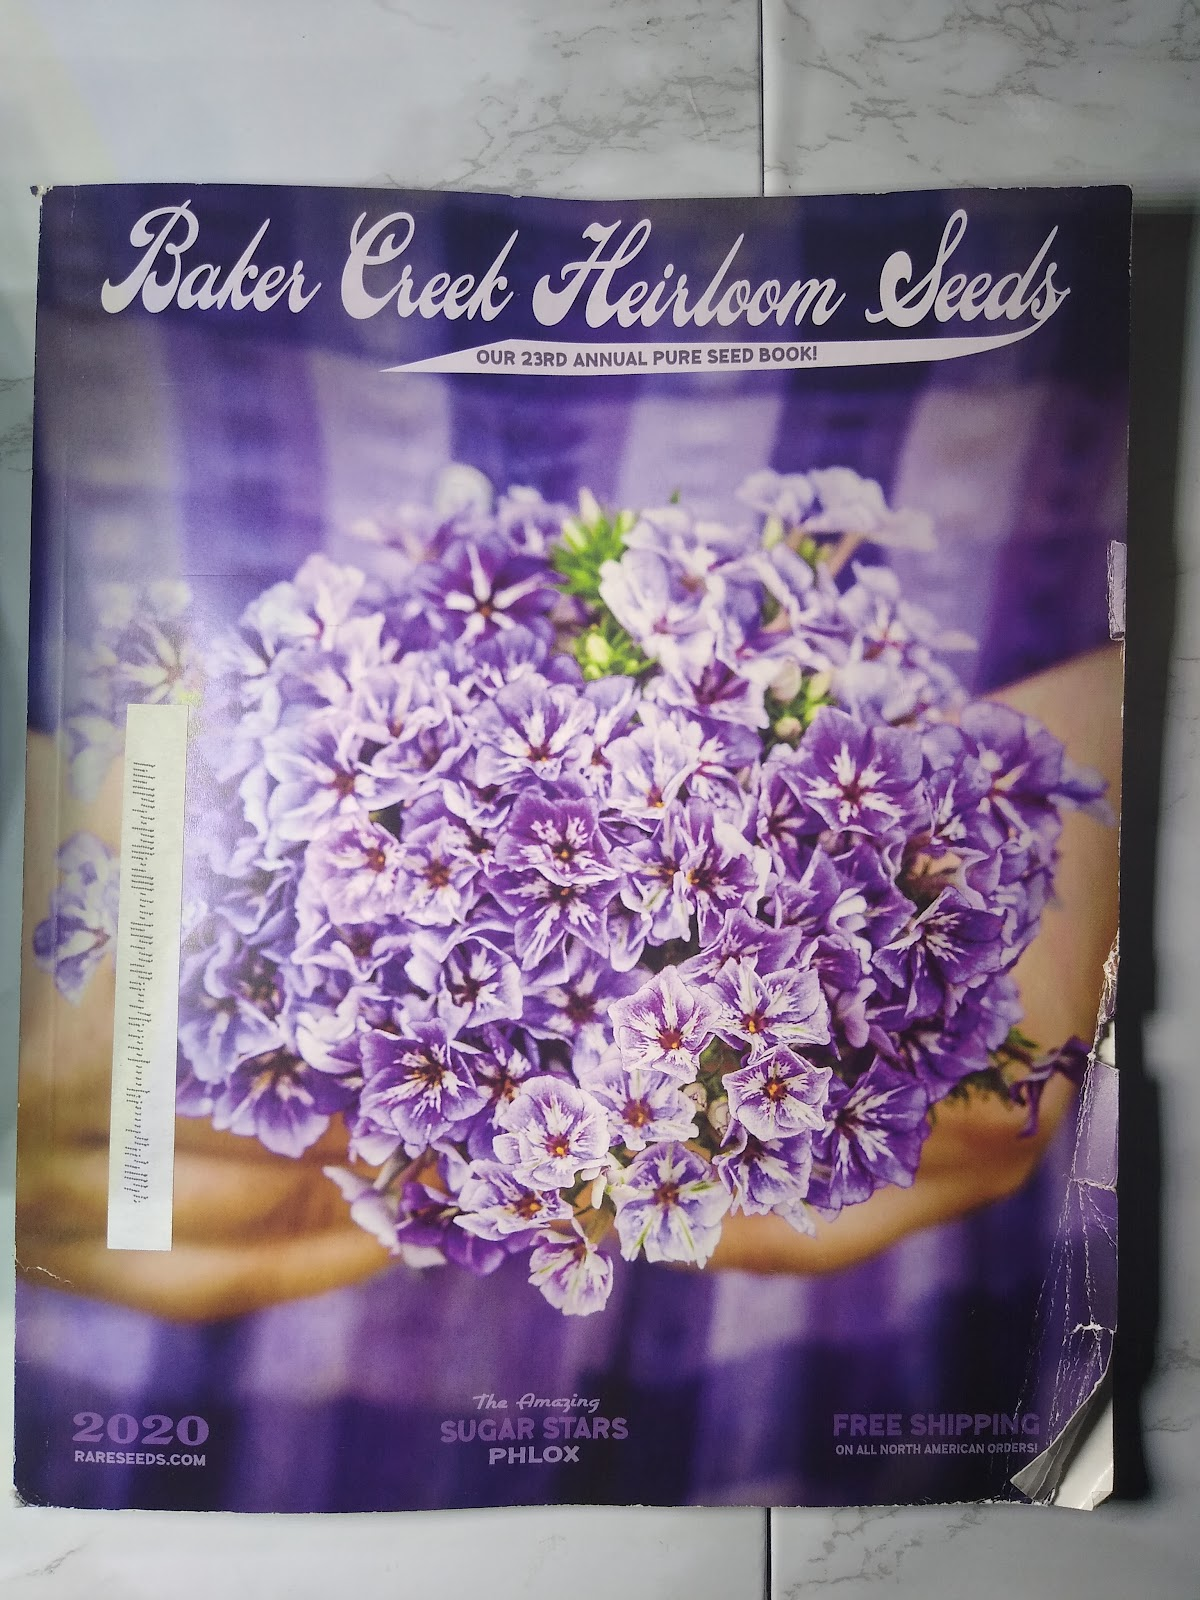 Baker Creek Heirloom Seeds catalog picture